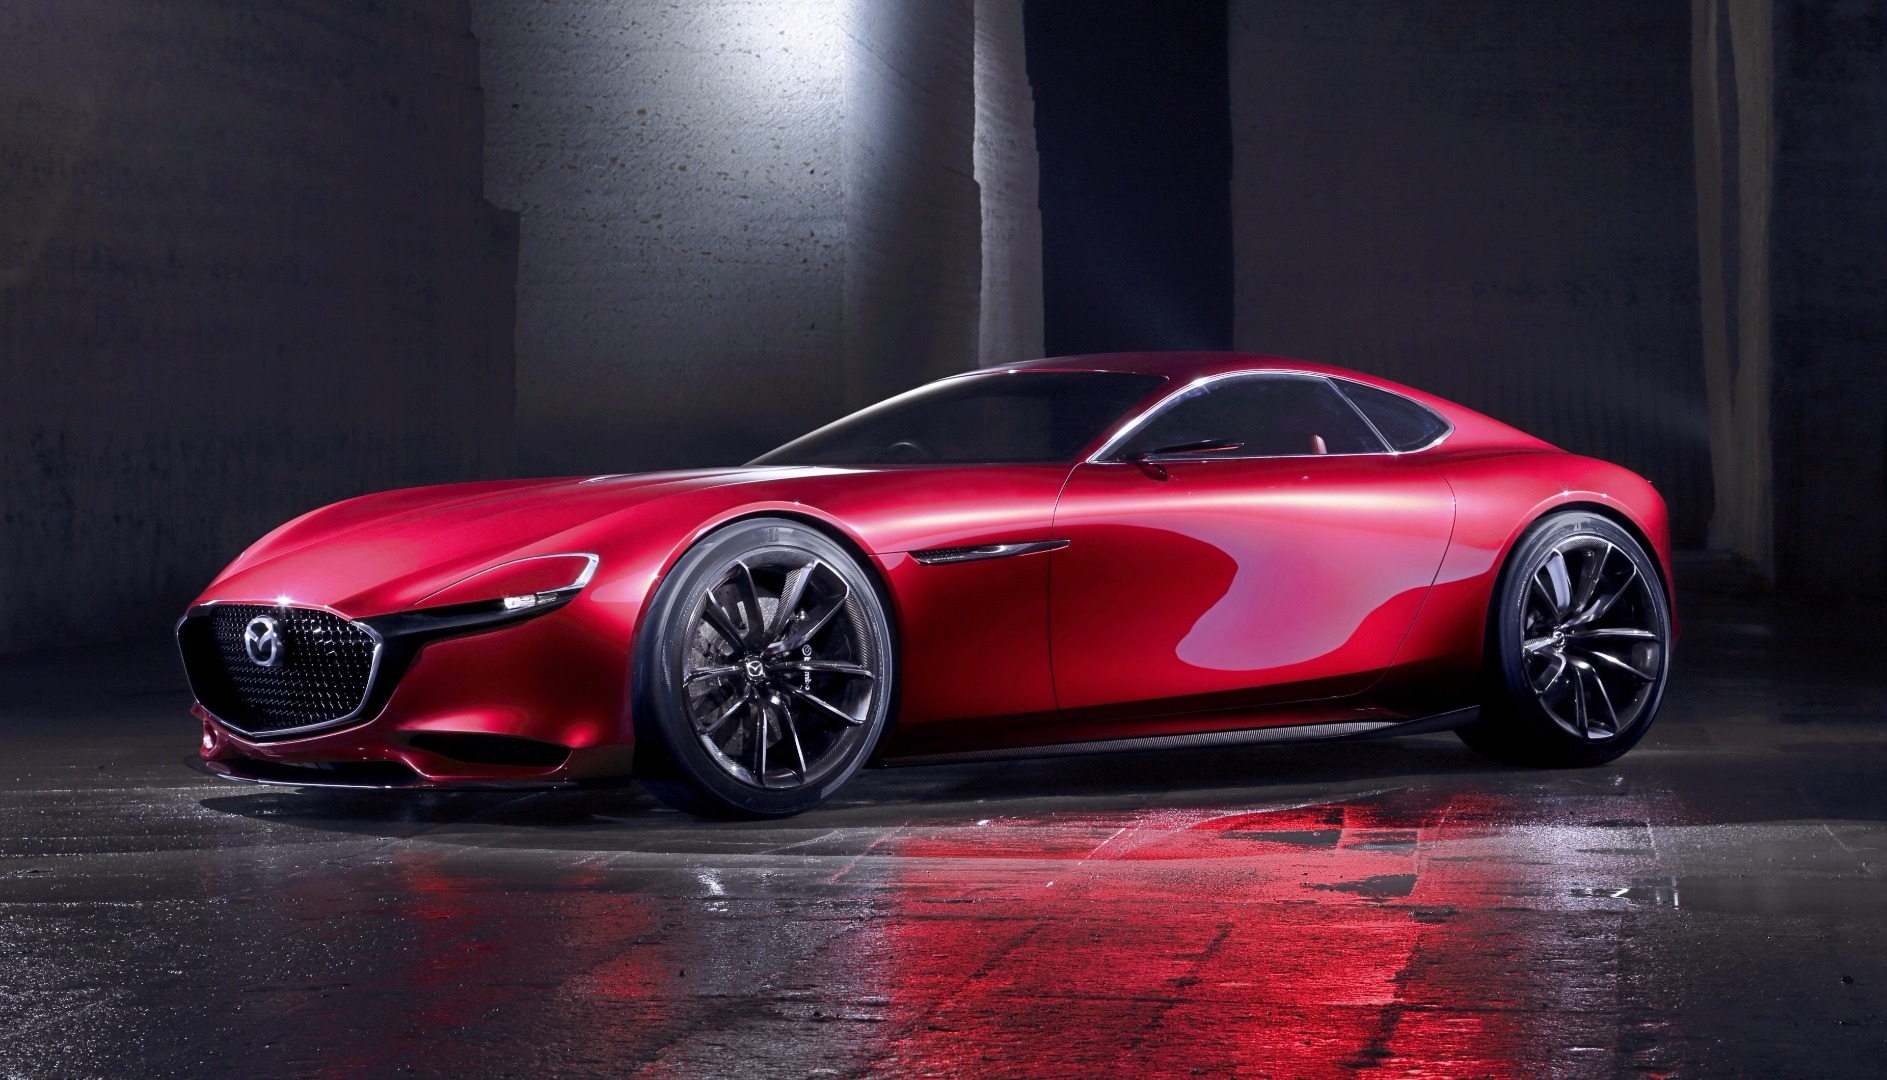 News - 2020 Reveal For Mazda's 300kW RX-9?